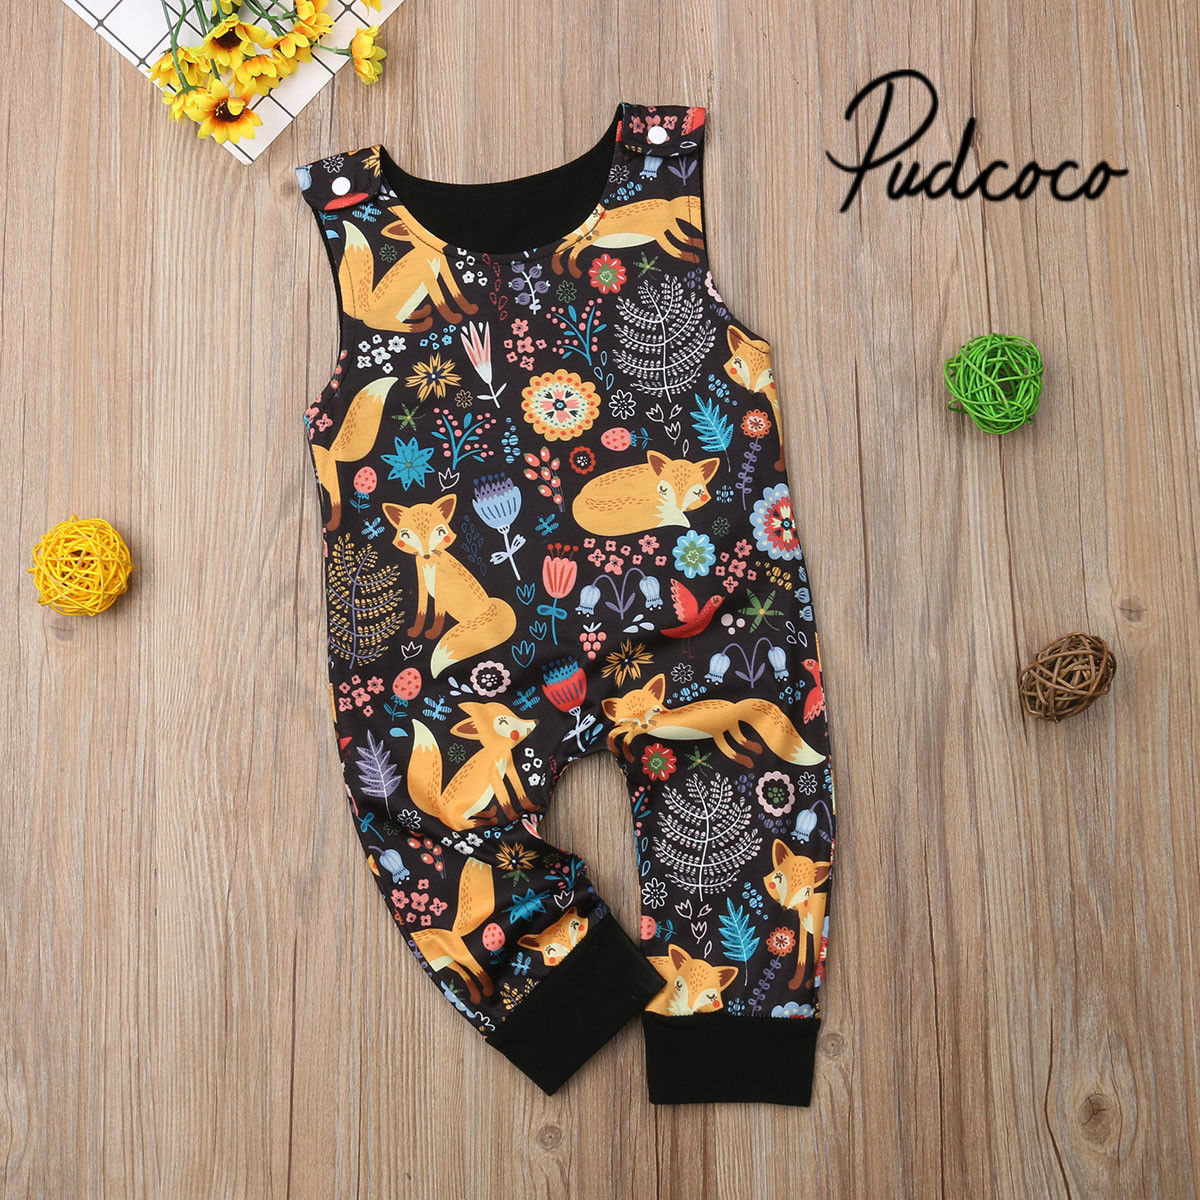 Fox Baby Girl Rompers Fashion Spring Newborn Baby Clothes For Boys Sleeveless 0-18M Kids Jumpsuit Princess Outfits Clothes 2019